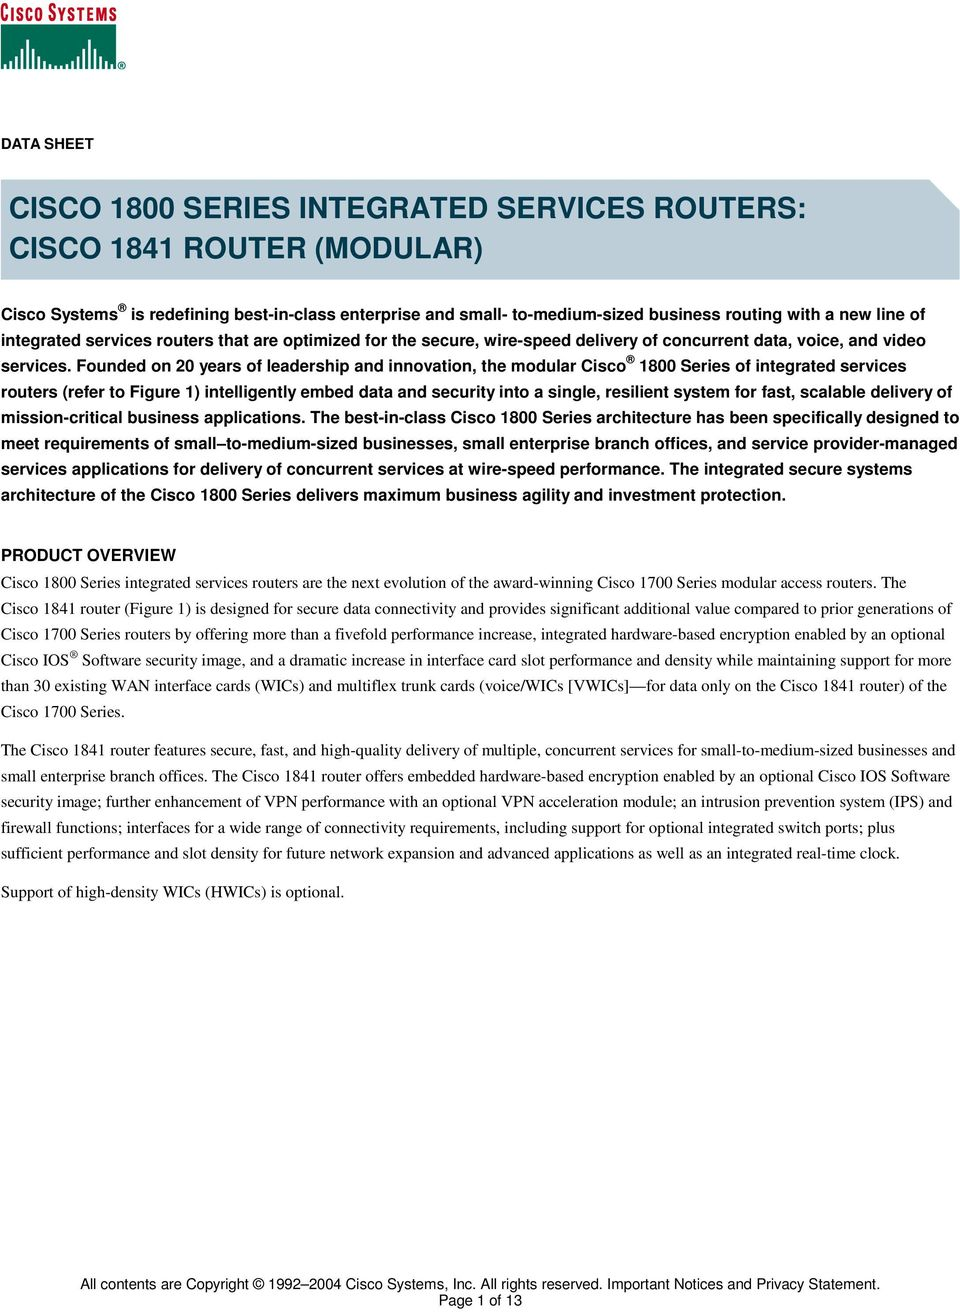 Founded on 20 years of leadership and innovation, the modular Cisco 1800 Series of integrated services routers (refer to Figure 1) intelligently embed data and security into a single, resilient